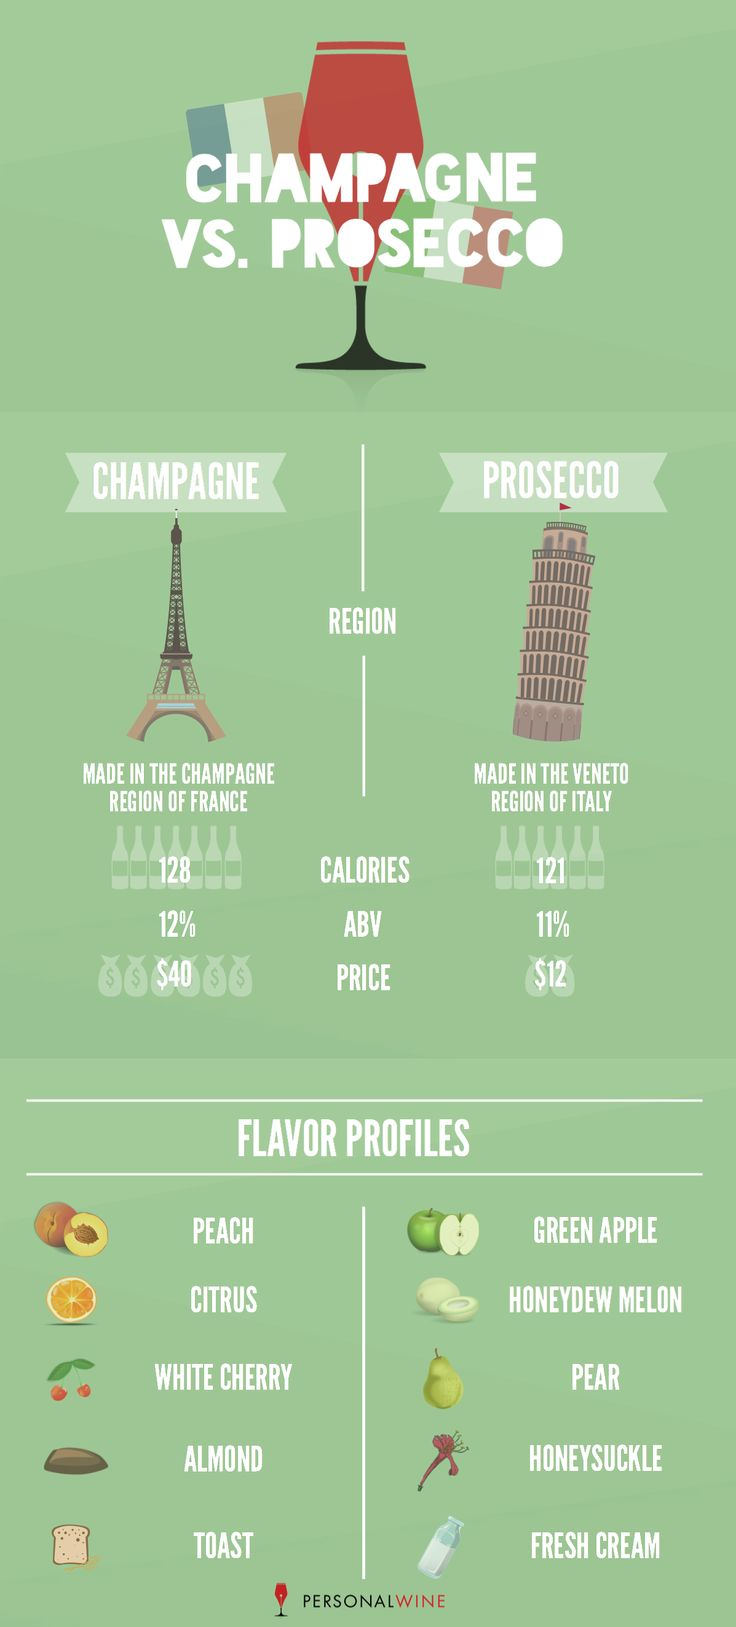 Believe it or not, not all bubbly is created equal. Two commonly confused sparkling wines are Champagne and Prosecco. Key differences include the region, flavor profiles, and price. Use our helpful infographic to tell these two sparkling wines apart. #infographic